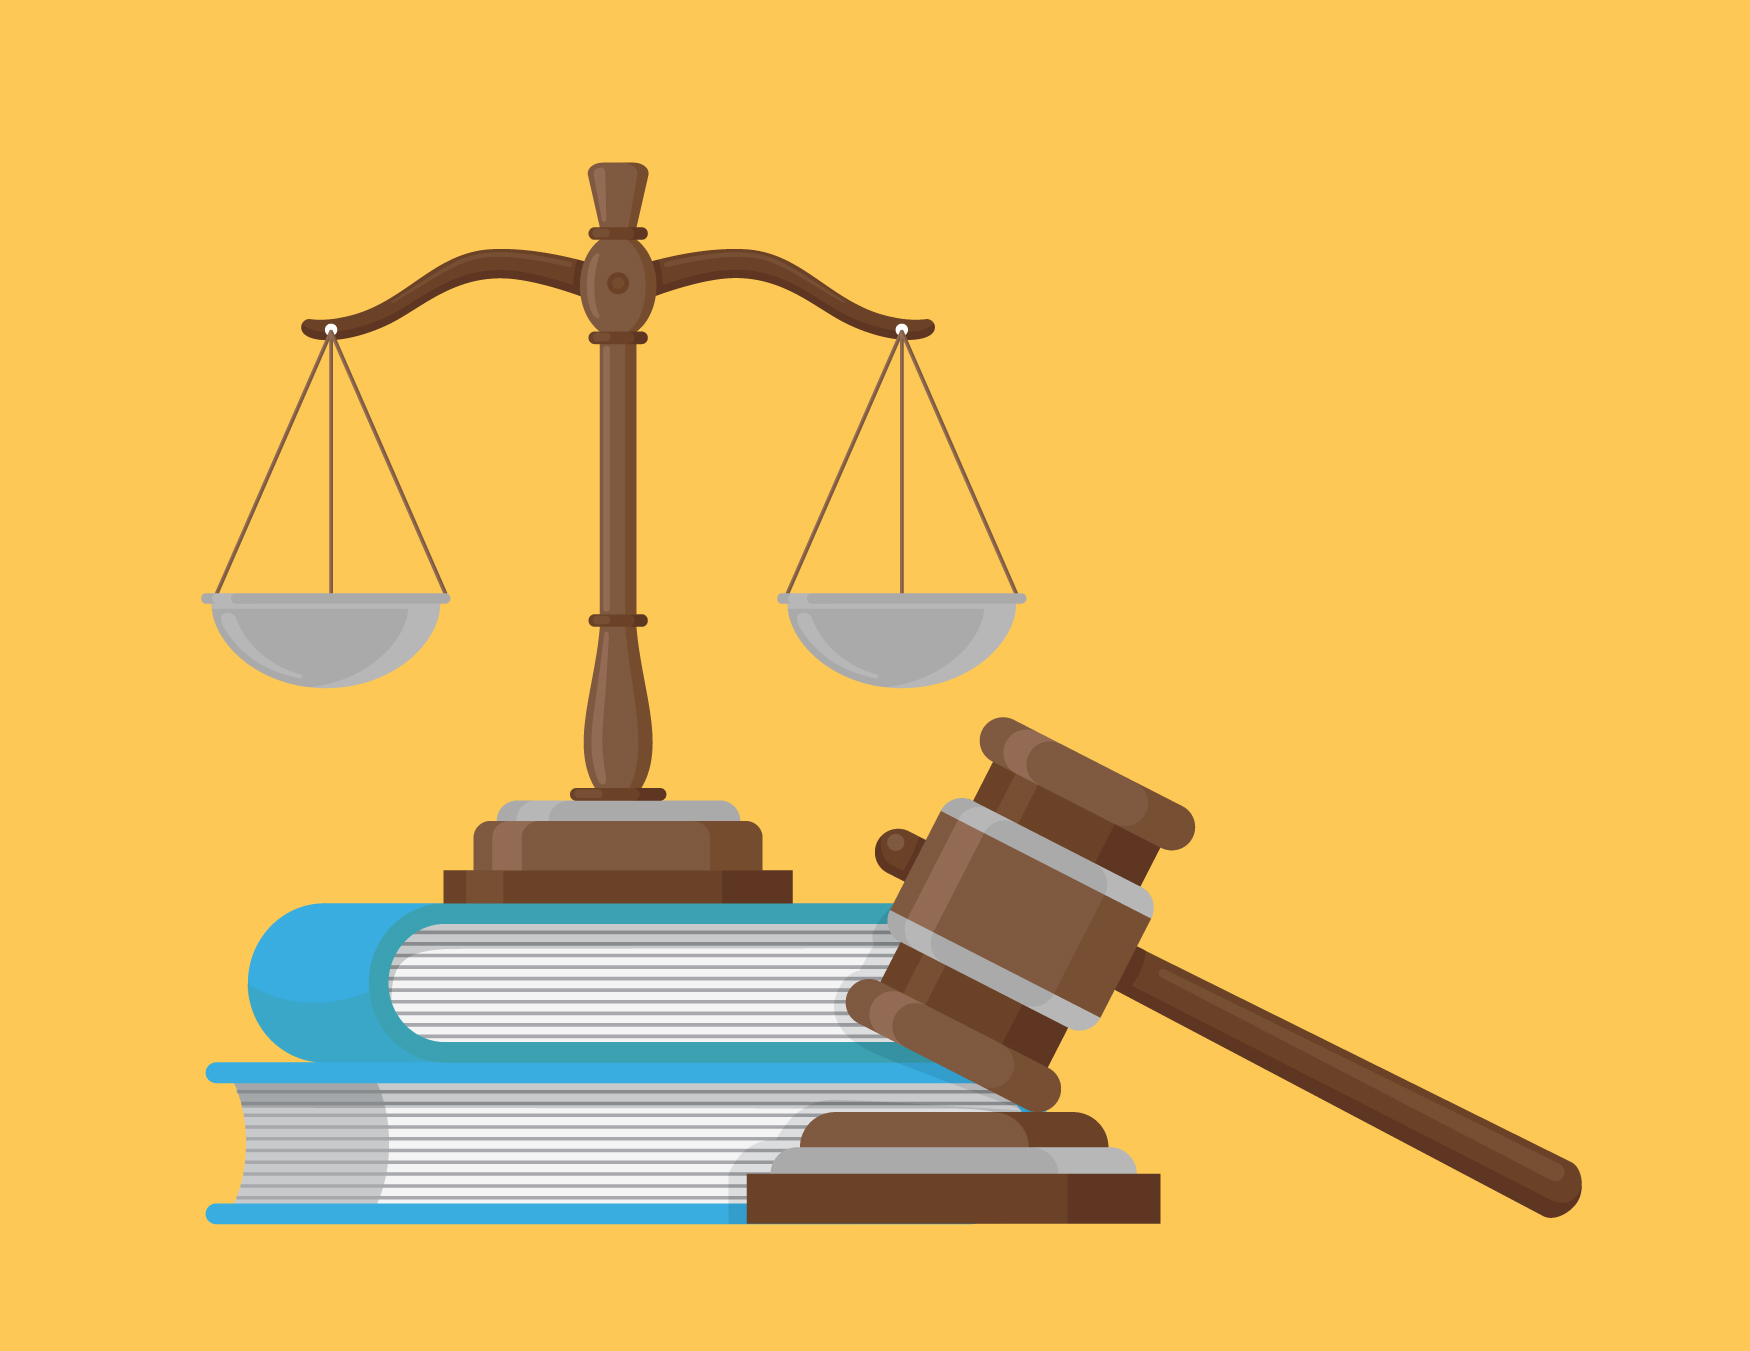 Measuring scale, books and gavel & sounding block